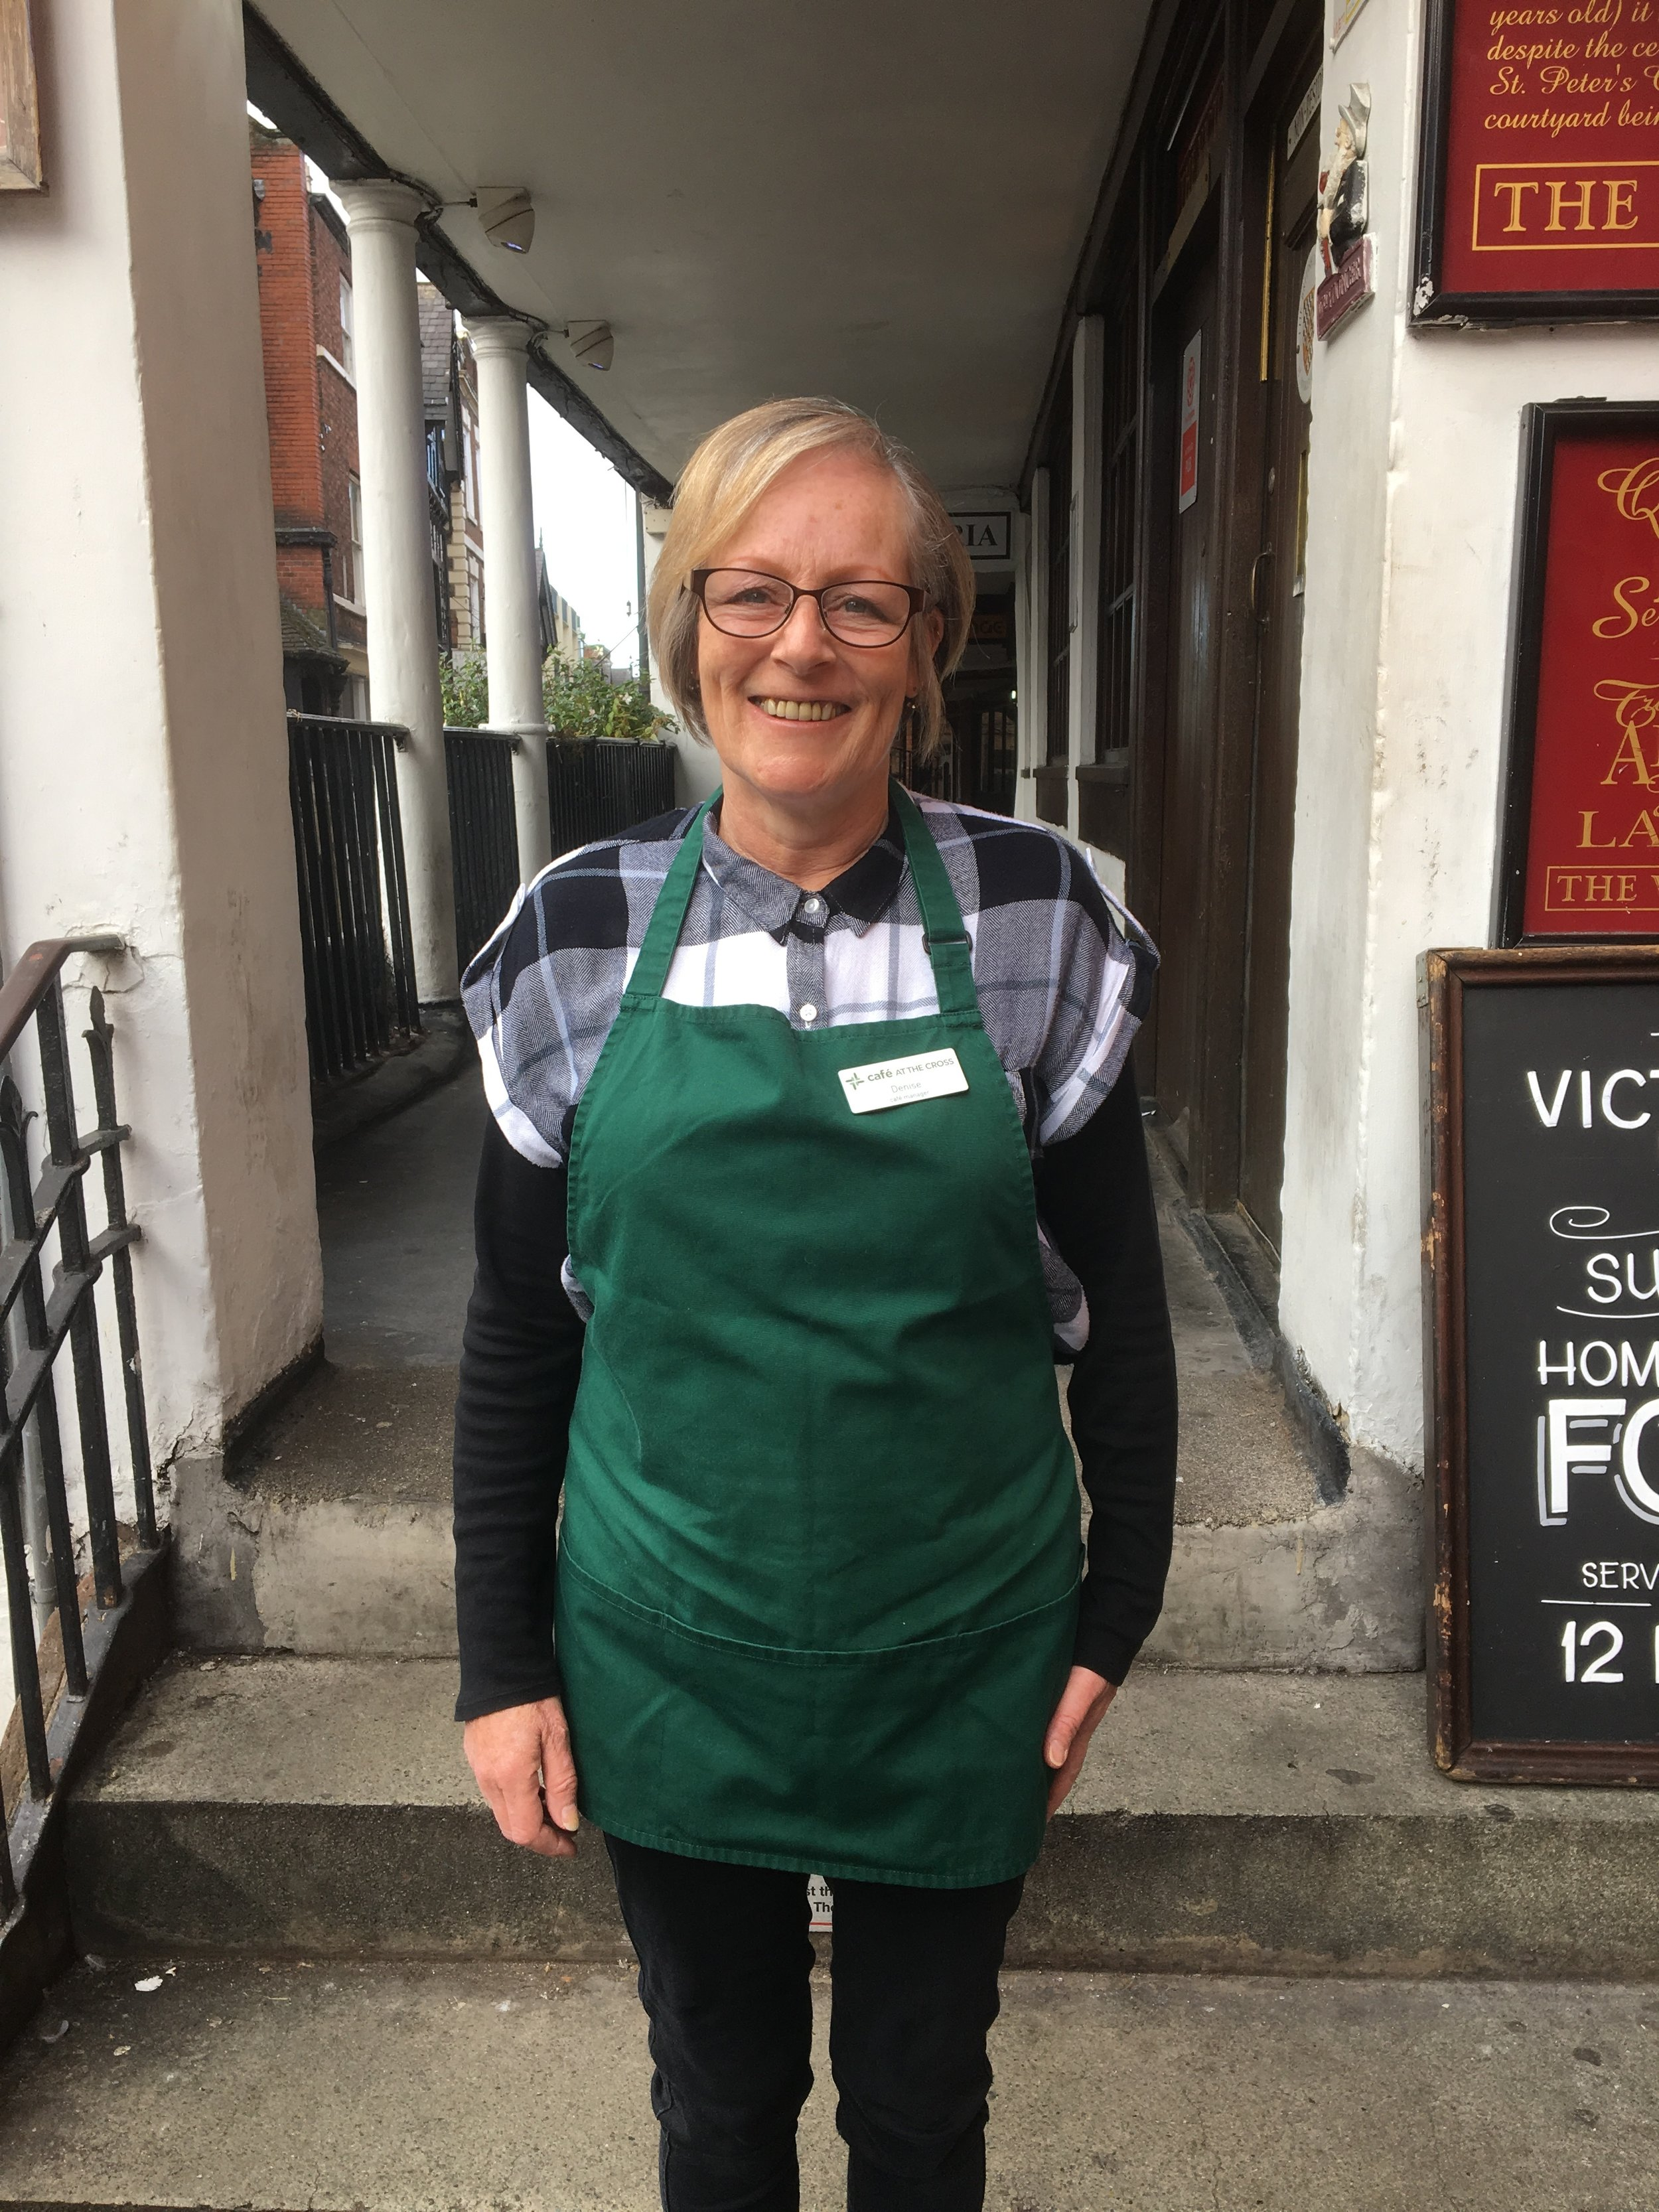 Denise Beech / Cafe Manager